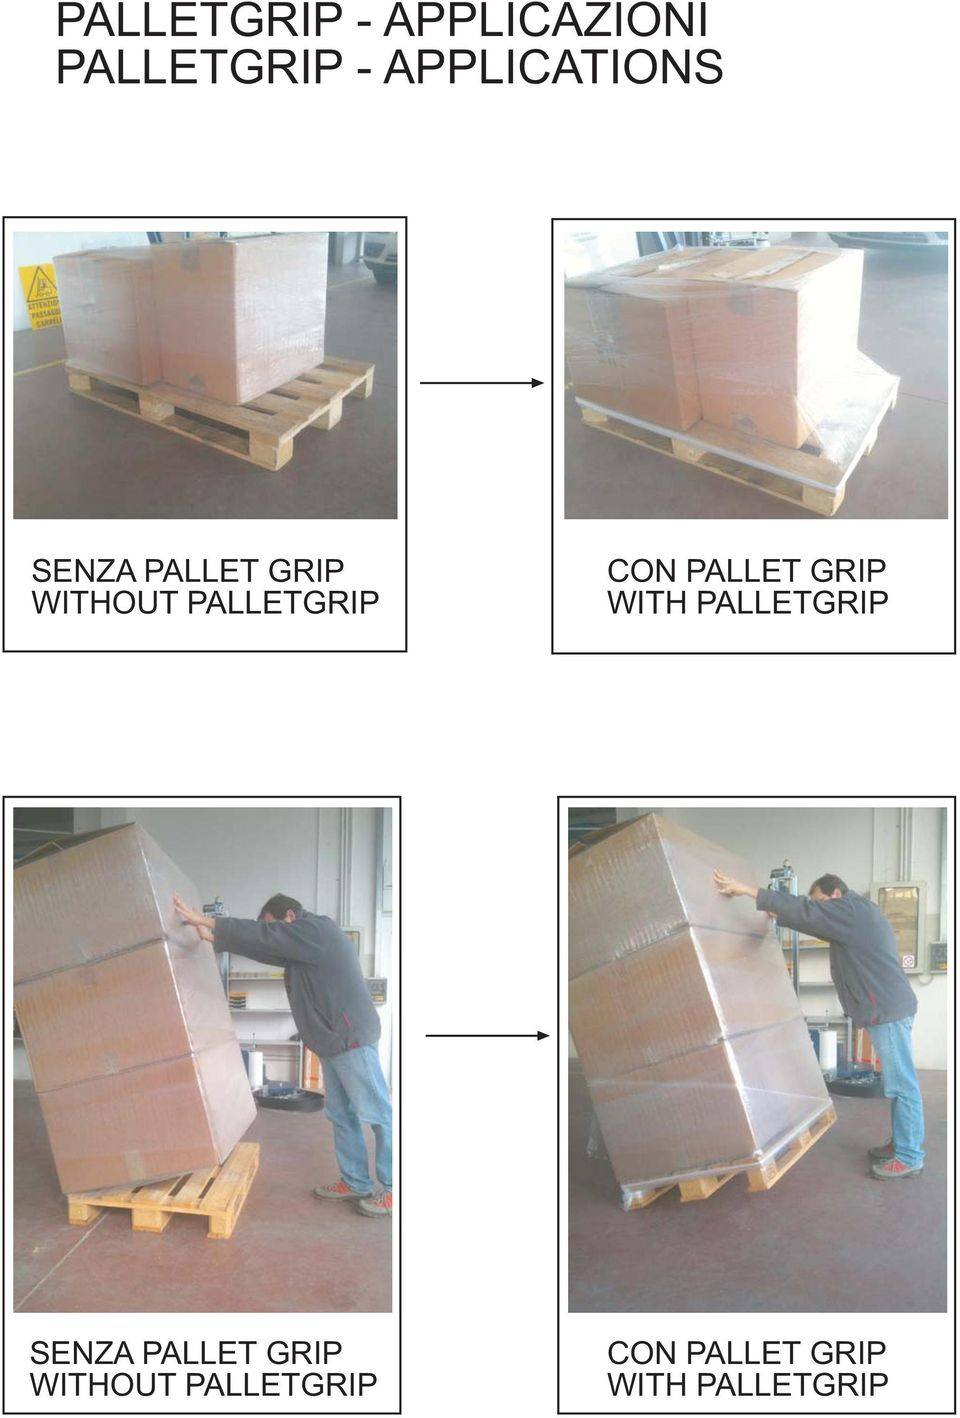 PALLETGRIP CON PALLET GRIP WITH PALLETGRIP